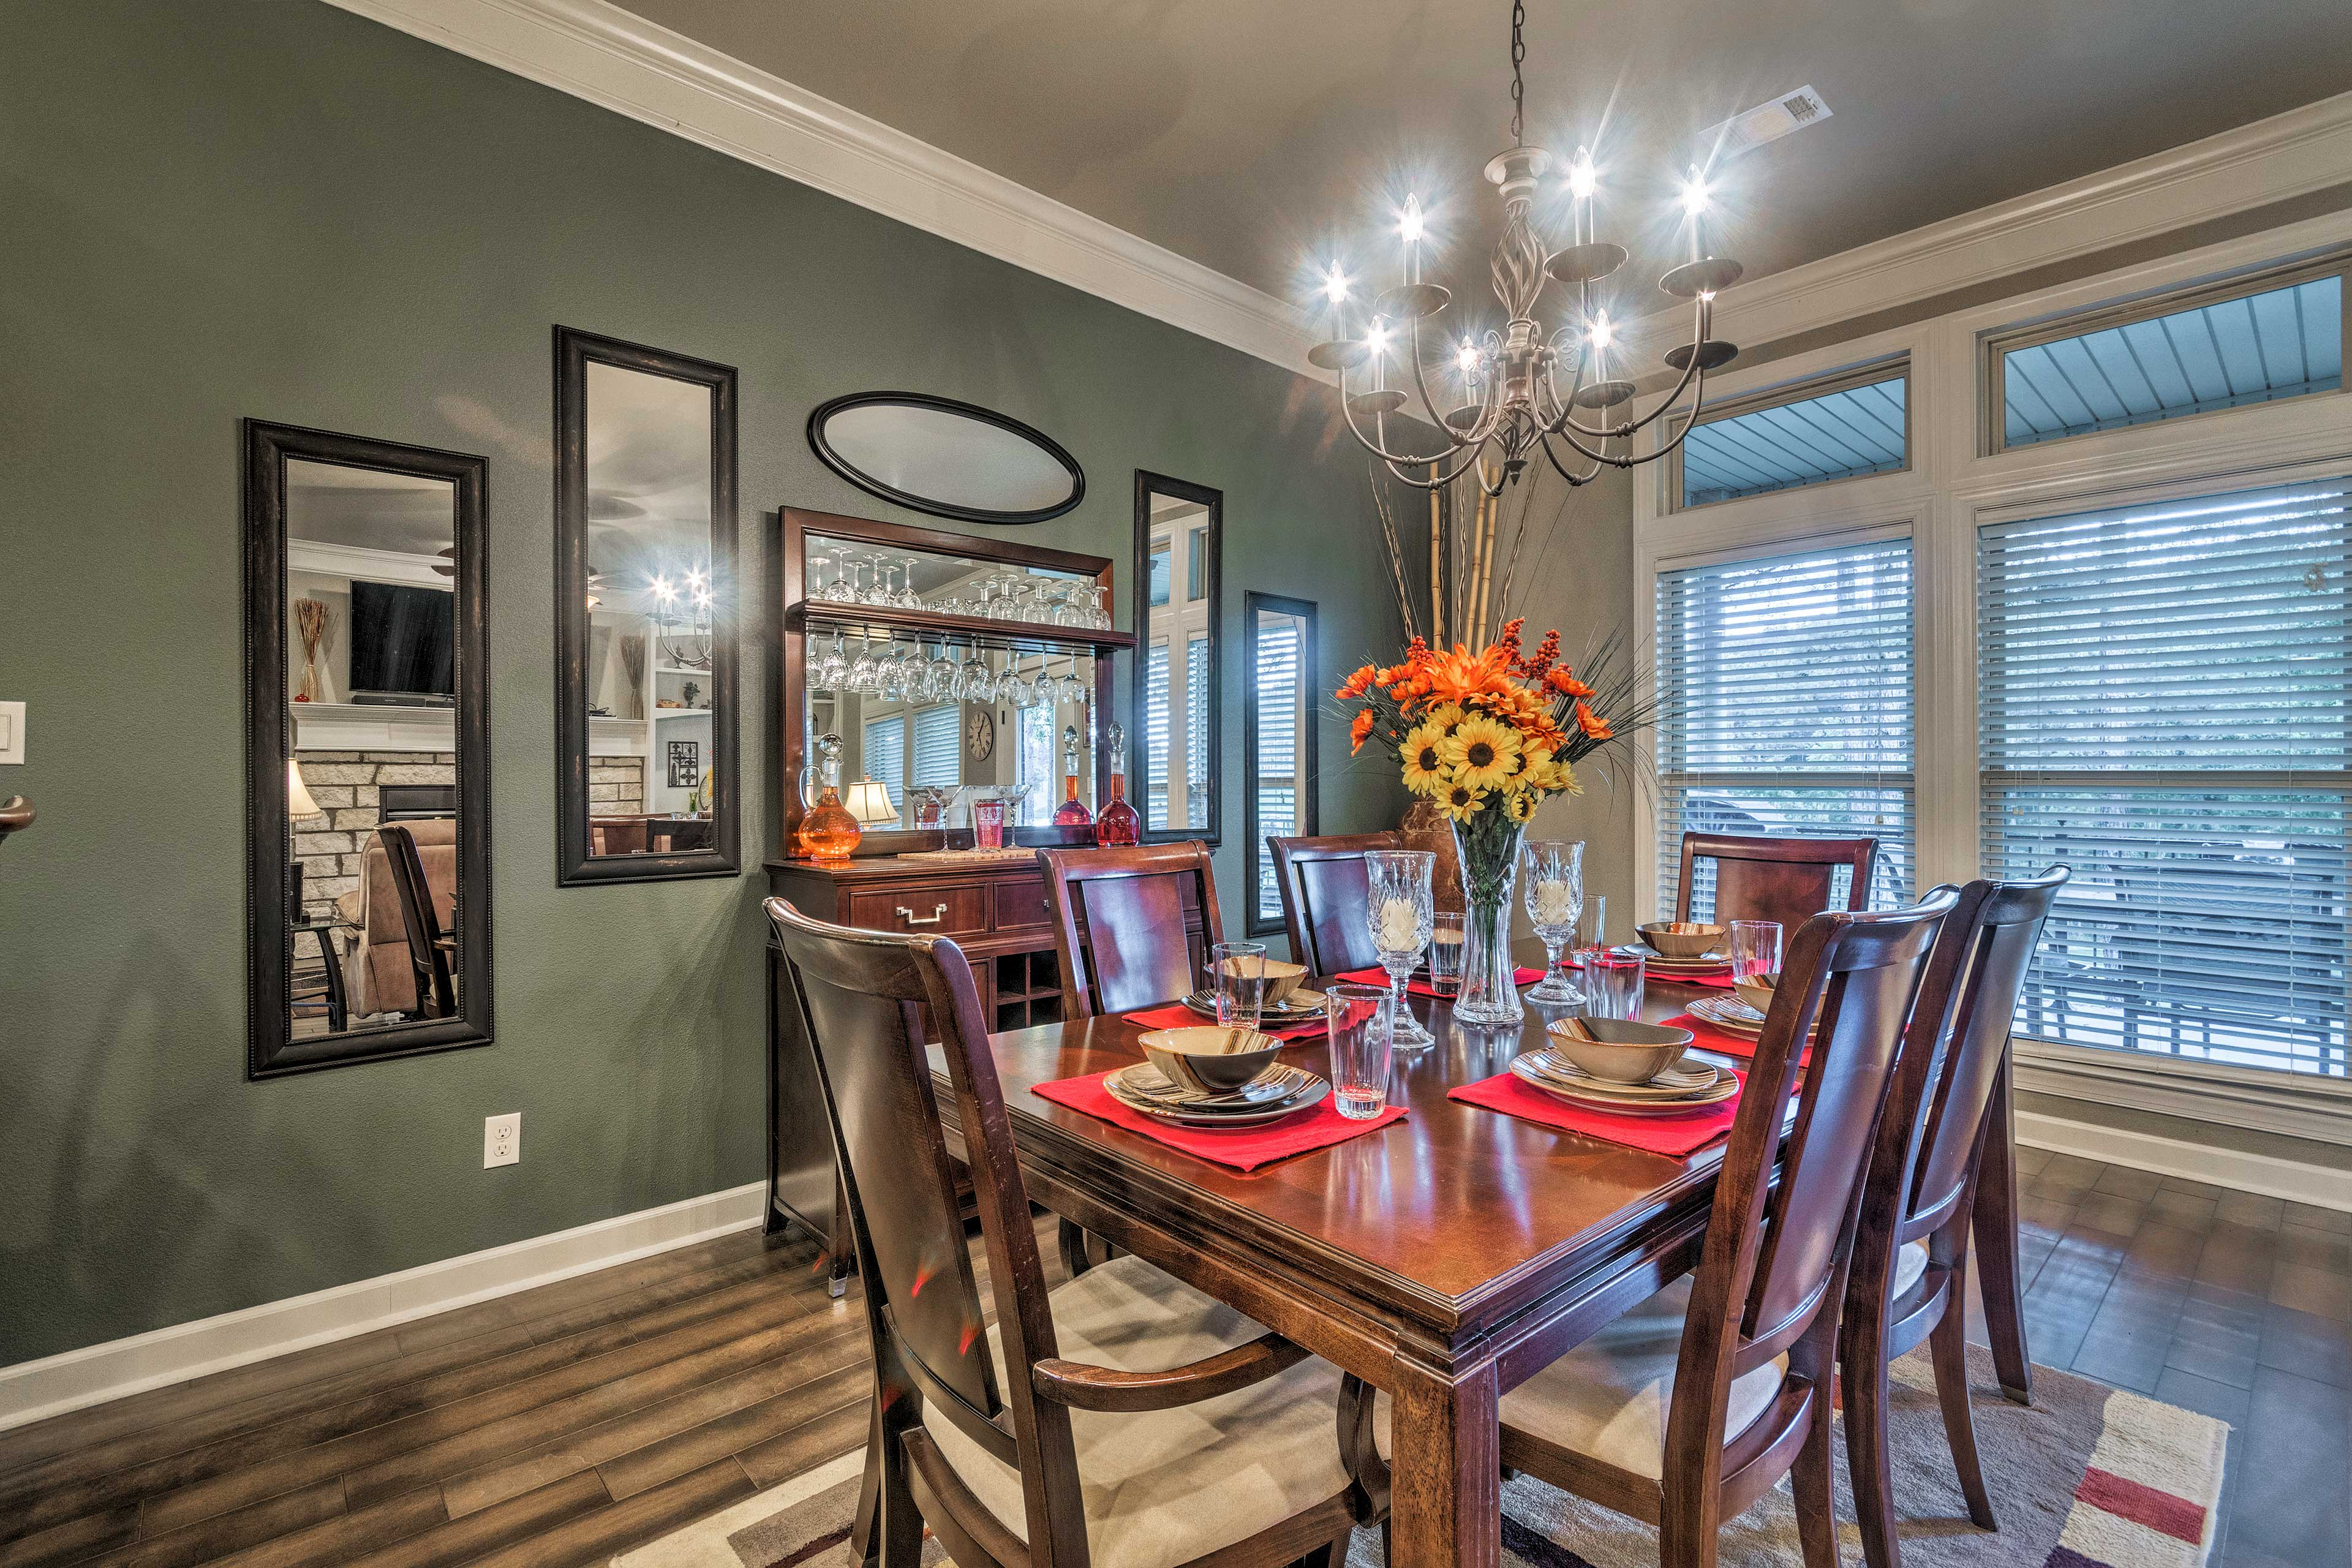 Gather around the dining table for a memorable meal.